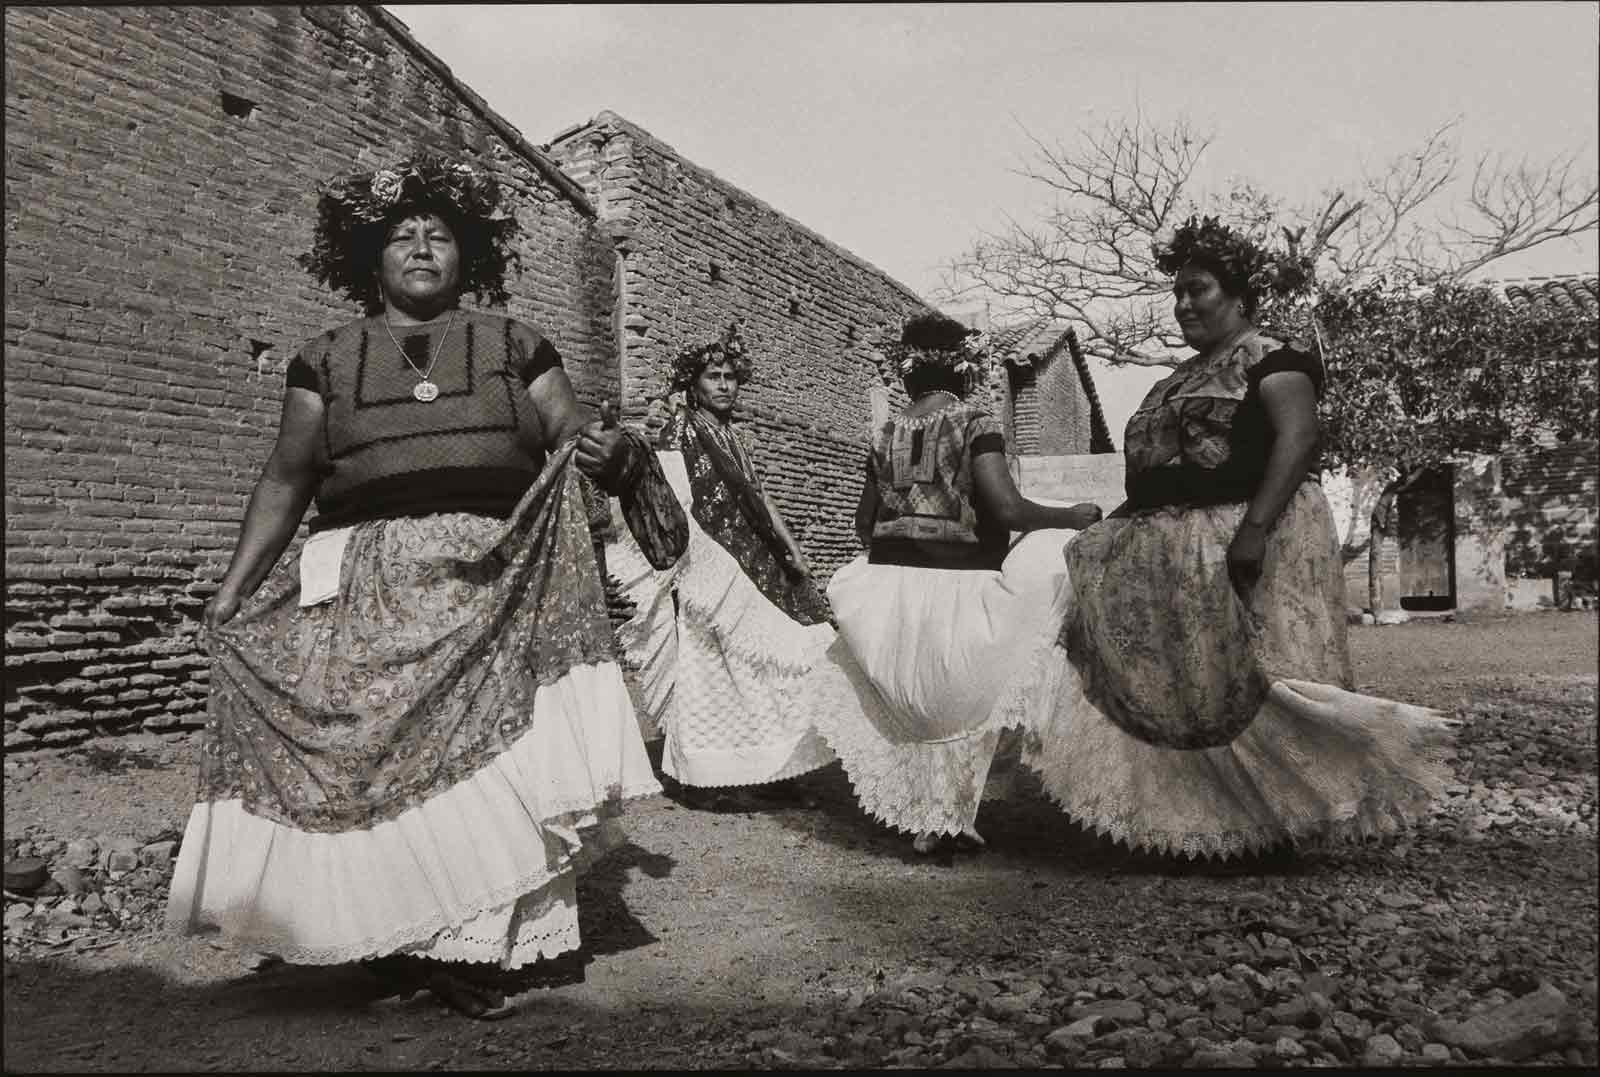 Graciela Iturbide, Visionary Ethnographer | by Christopher Alessandrini | NYR Daily | The New York Review of Books